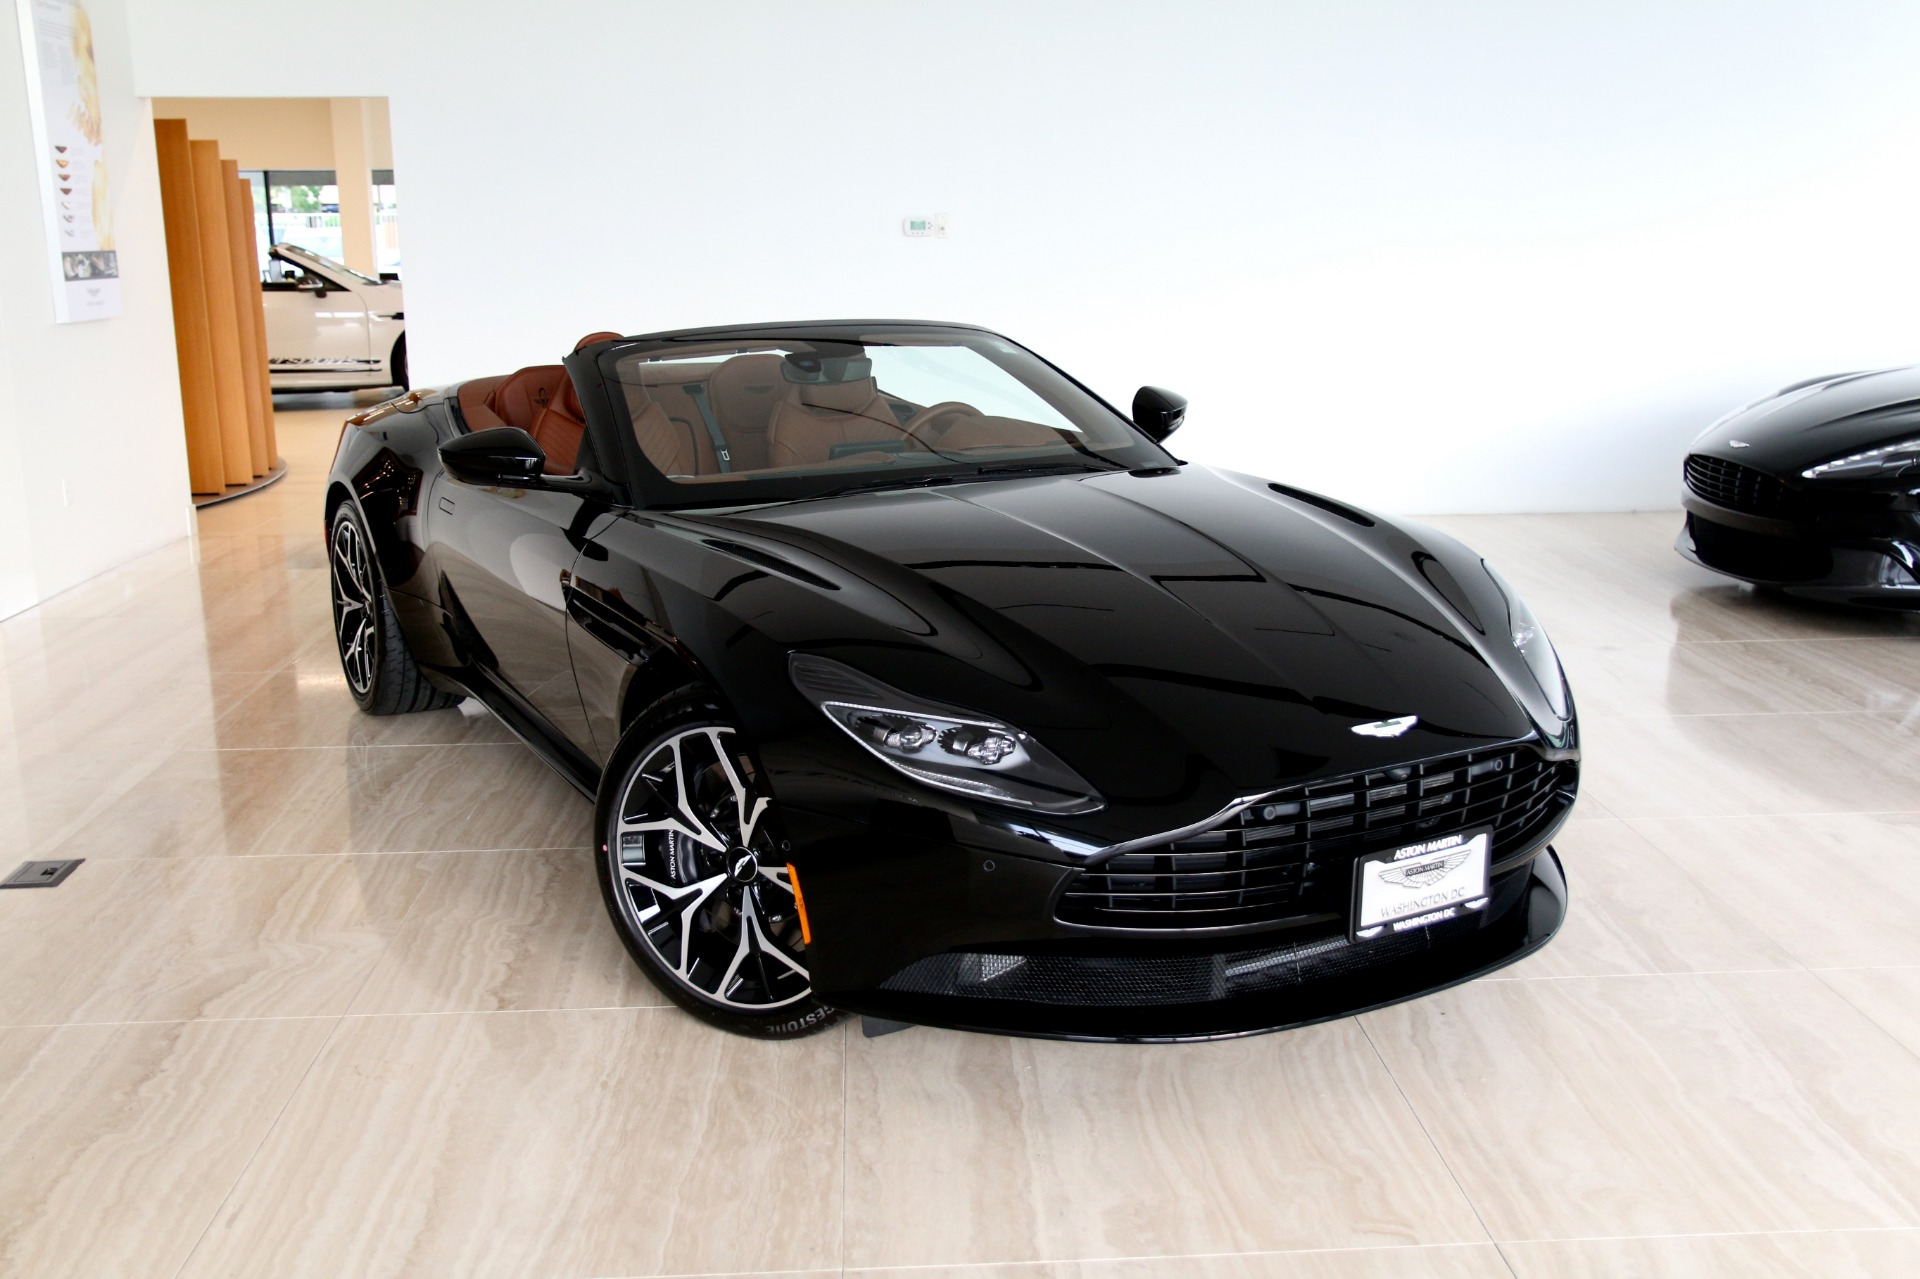 2019 aston martin db11 volante stock # 9nm05654 for sale near vienna